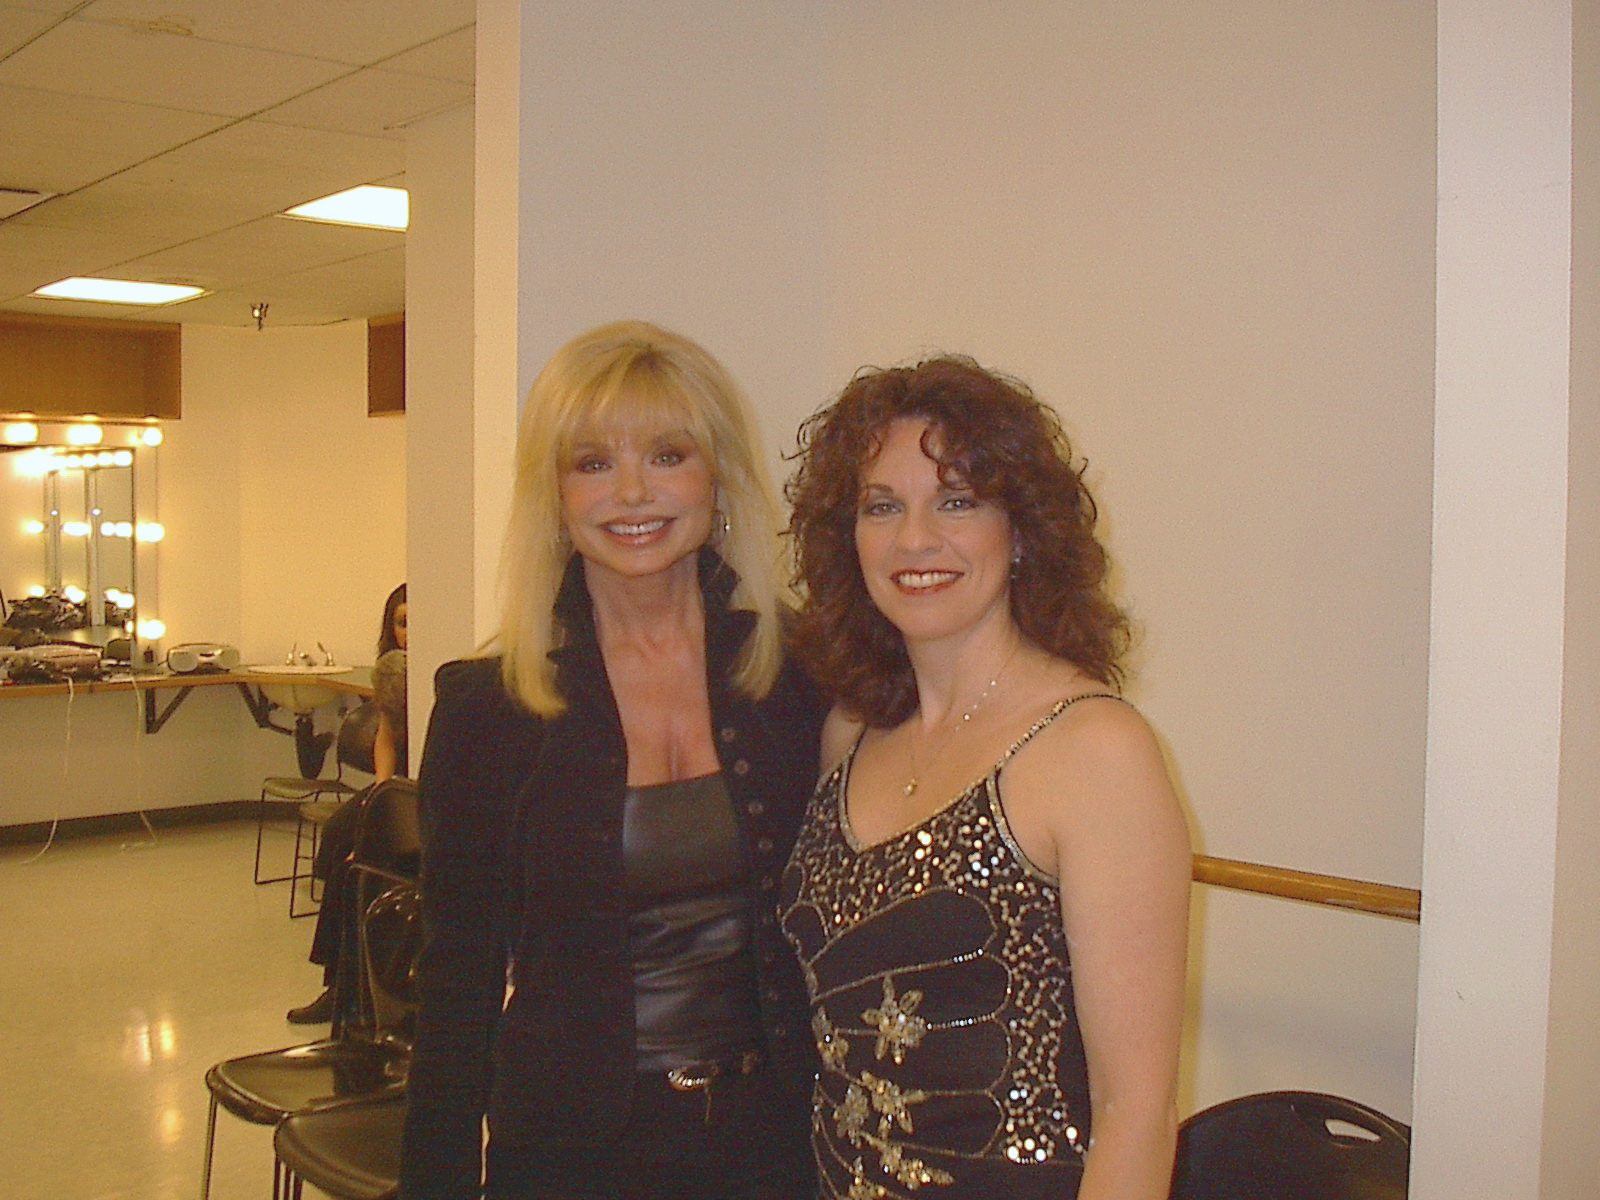 Copy of lonie anderson and donnavv.jpg